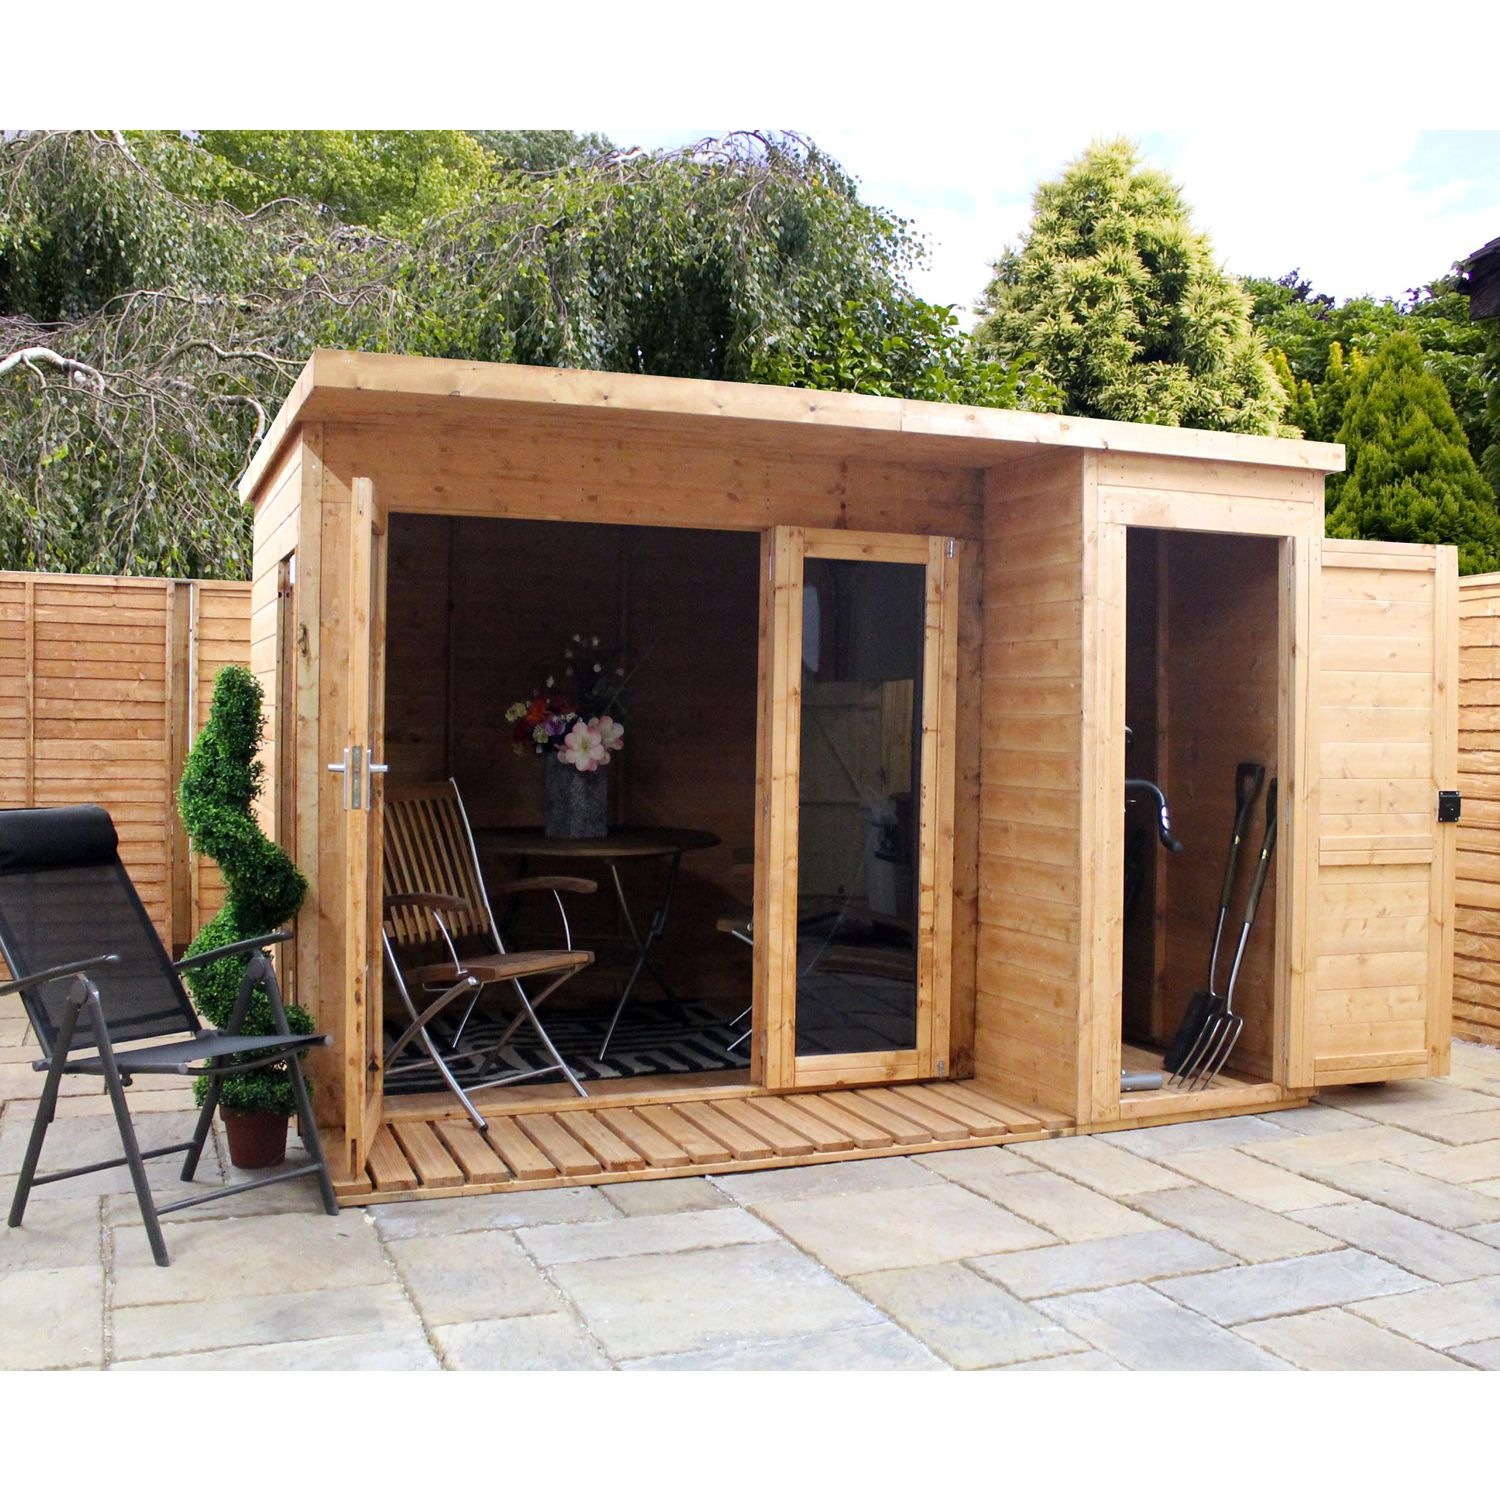 wooden ideas cabinet garden design needs size wood shed designsideas storage download small also for all splendiferous considerable gorgeous and gardening gh large office sheds your designs outdoor